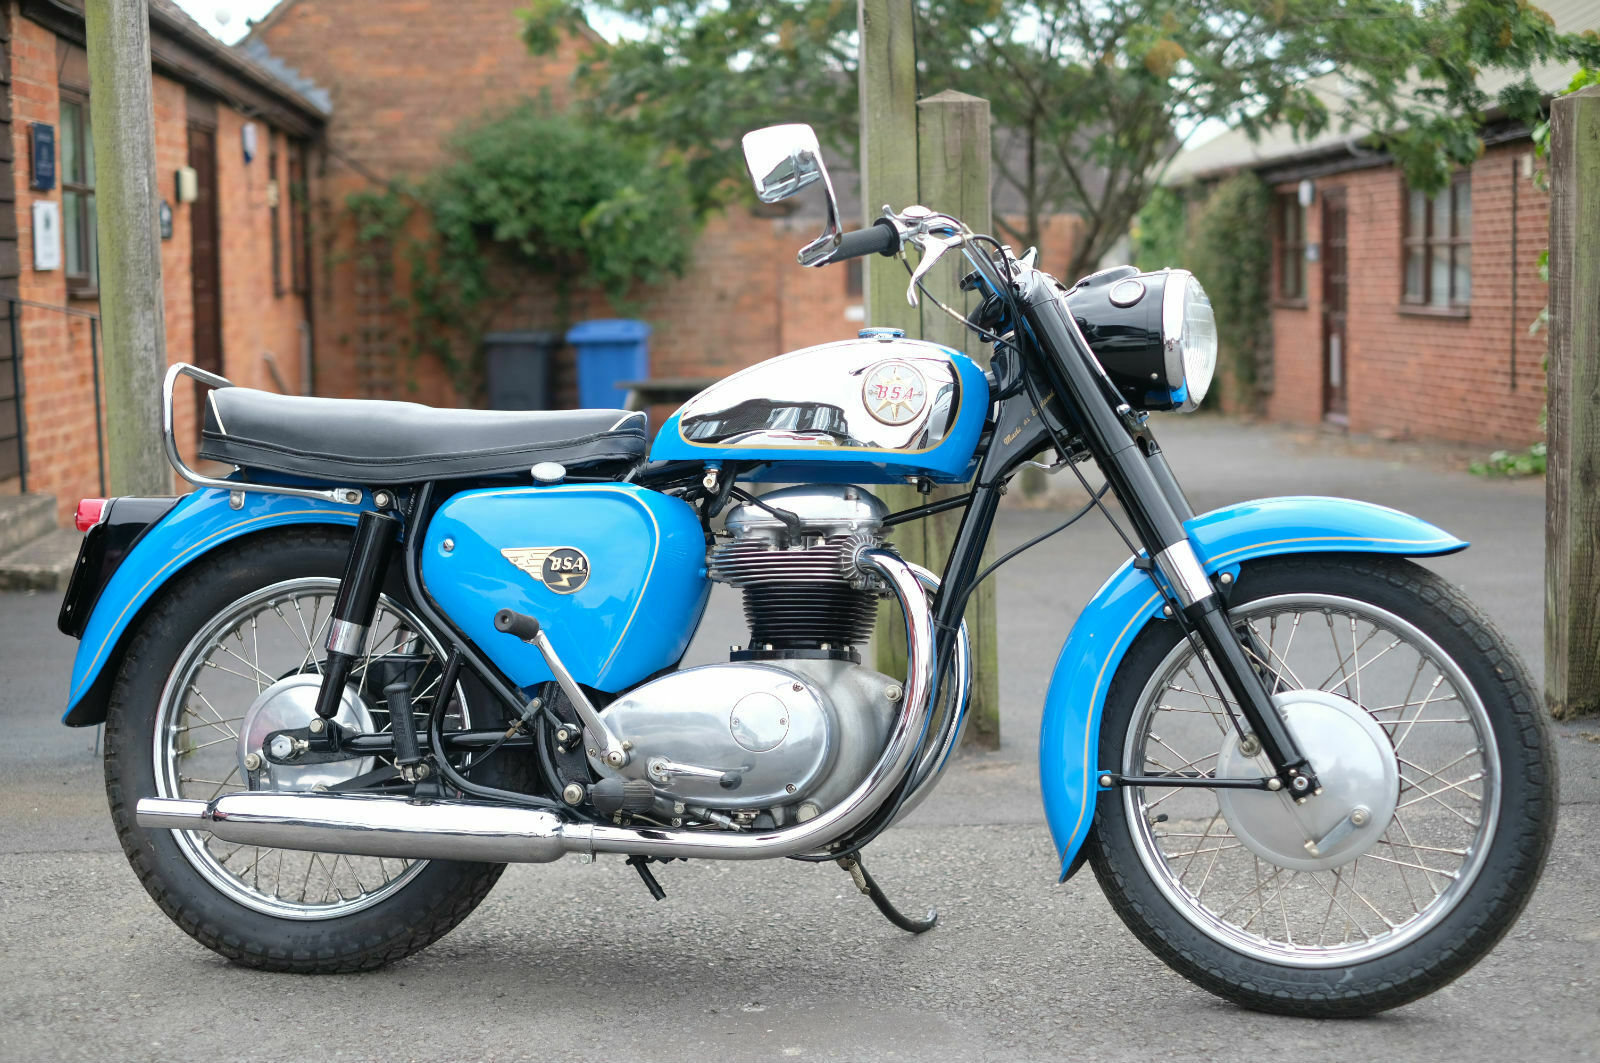 BSA A65 A 65 Star 1962 Stunning, just stunning For Sale (picture 1 of 6)